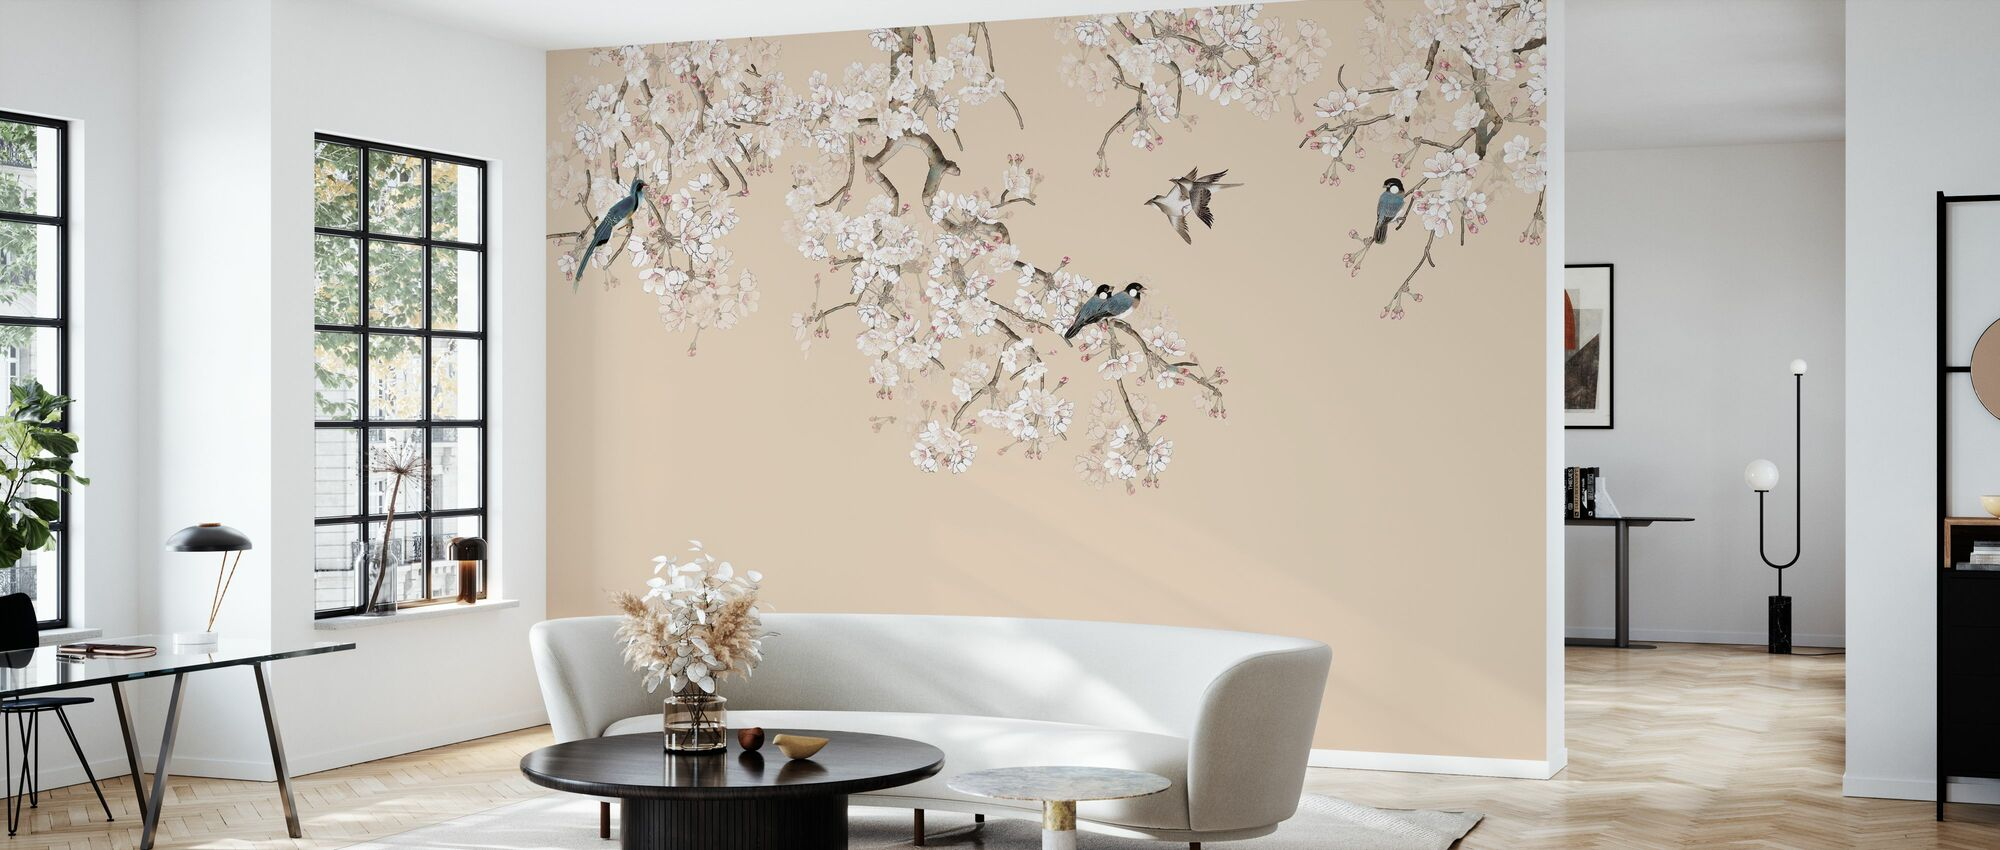 Birds Hangout - Peach - Wallpaper - Living Room